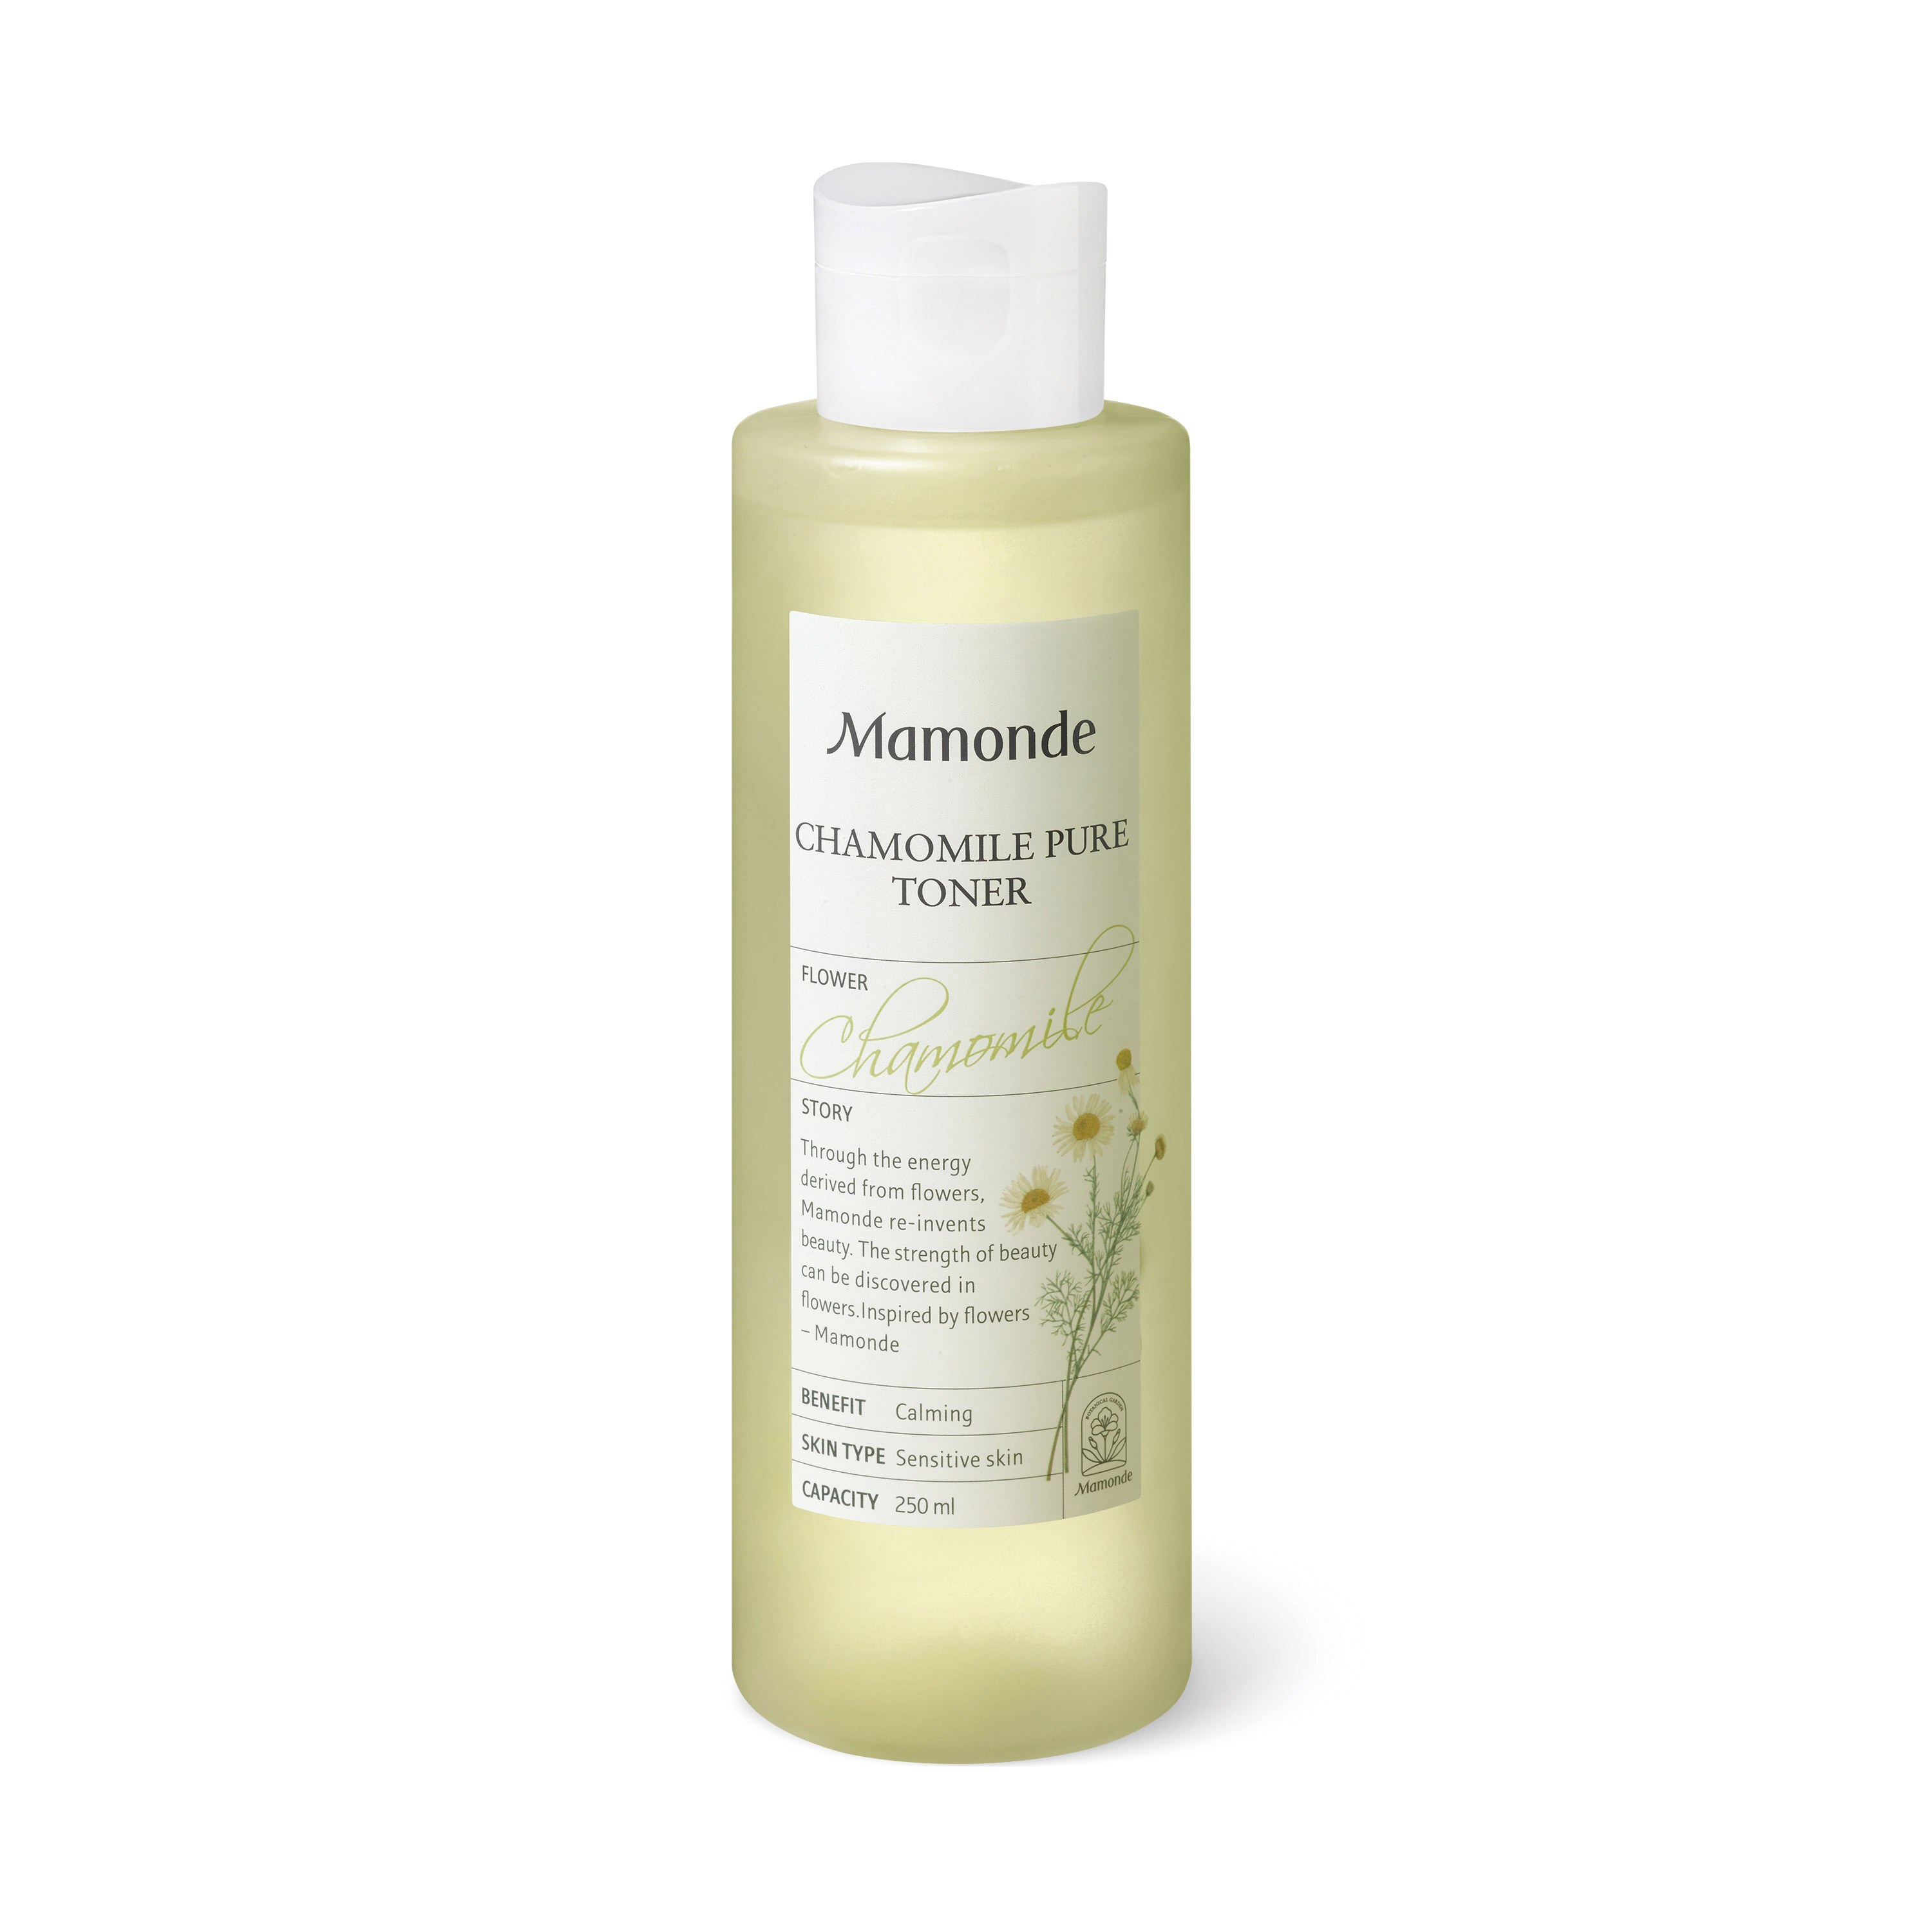 Mamonde Skin Care CHAMOMILE PURE TONER - Soothing Toner, Sensitive Skin